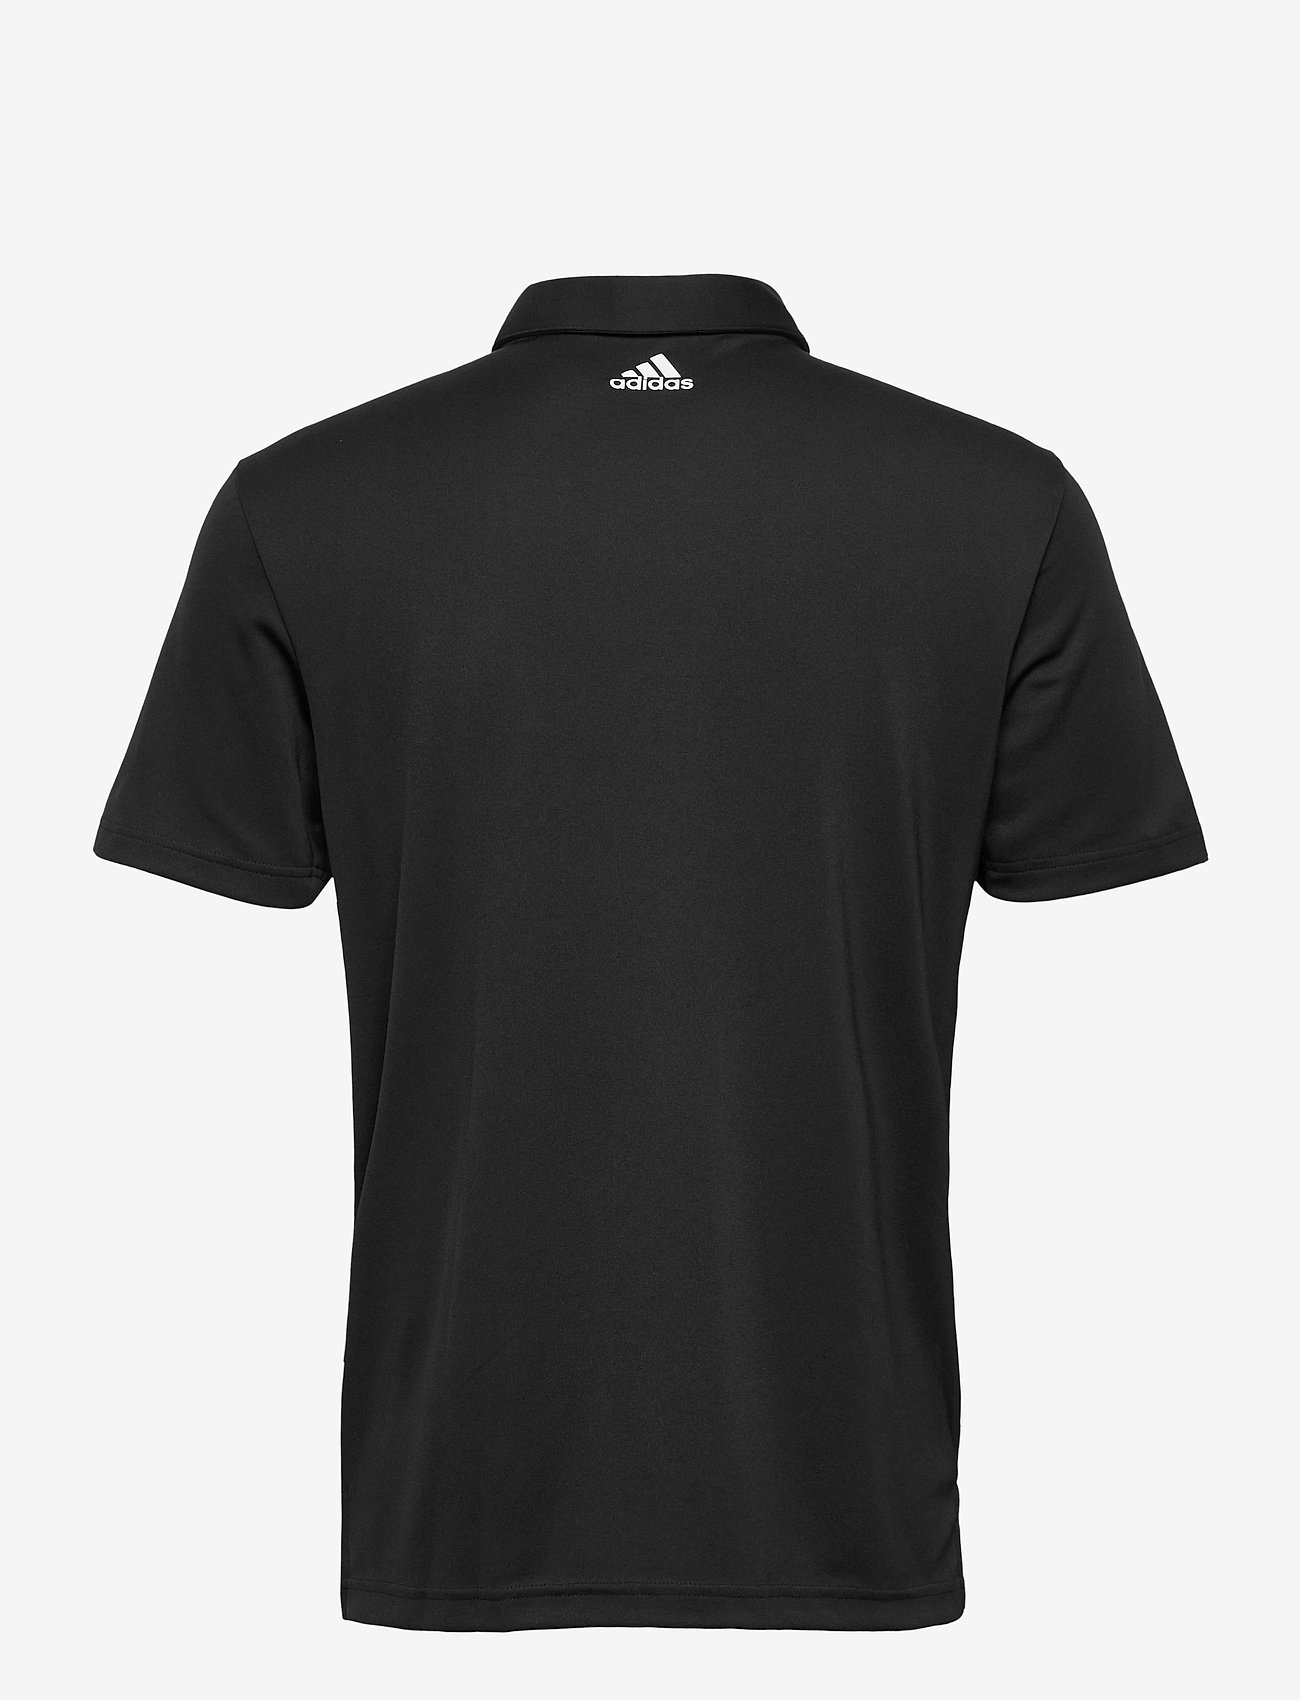 adidas Golf - 3-Stripe Basic - oberteile & t-shirts - black/white - 1